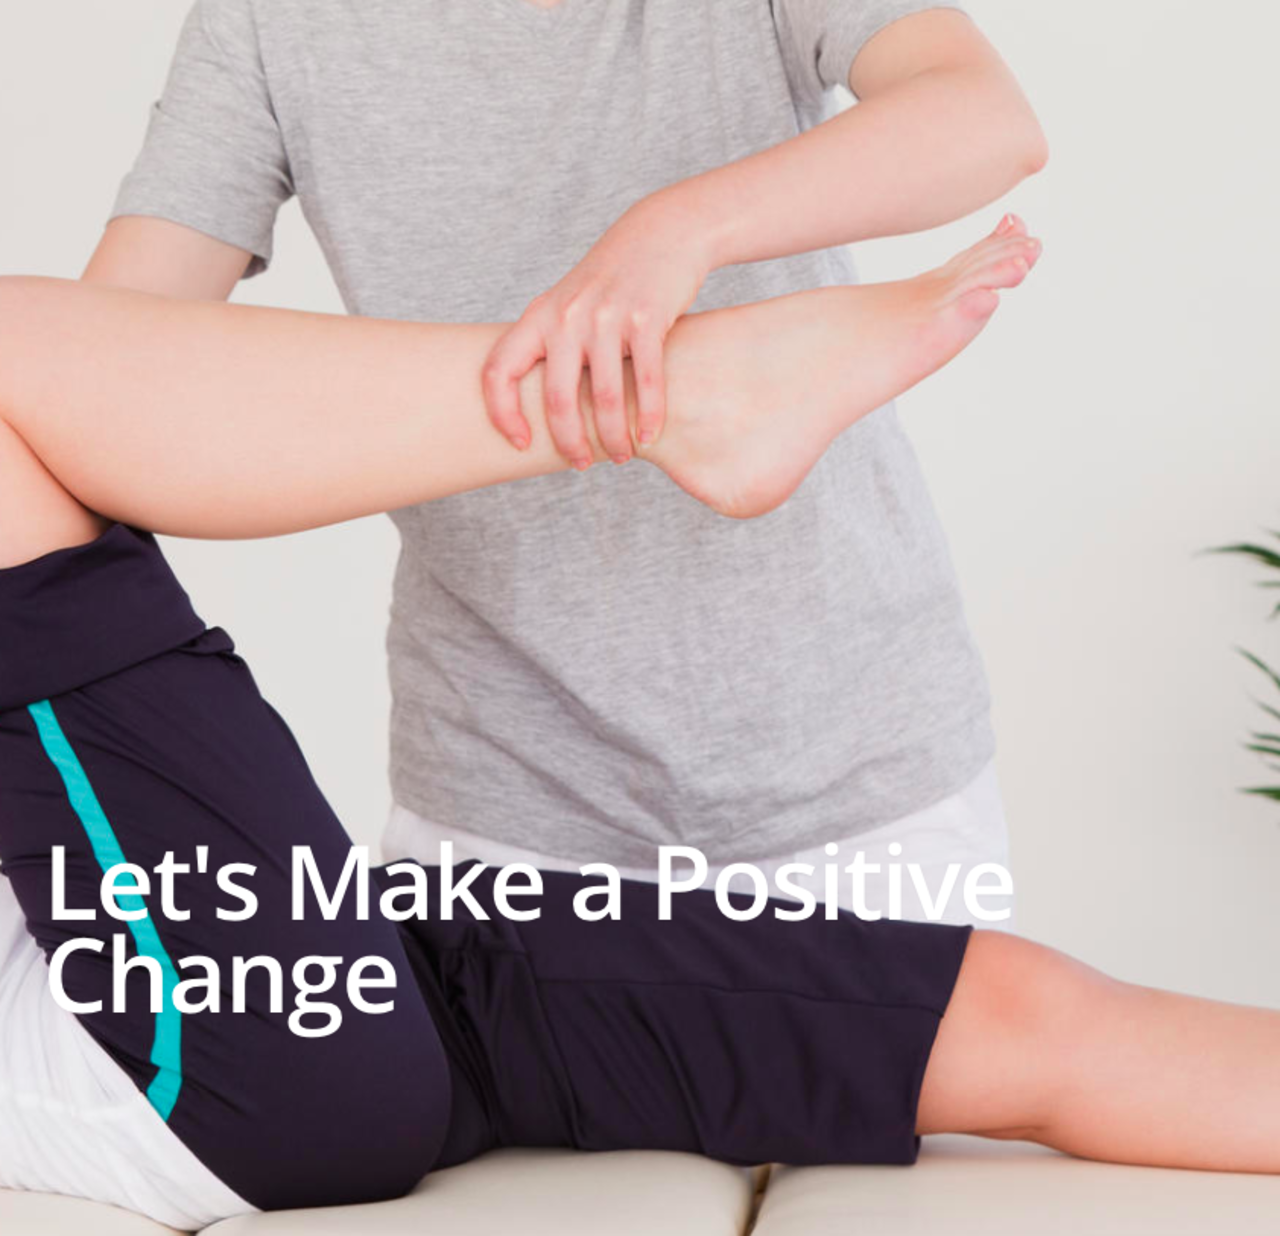 Delta Physical Therapy - Medical - Physical Therapists in Dorchester MA